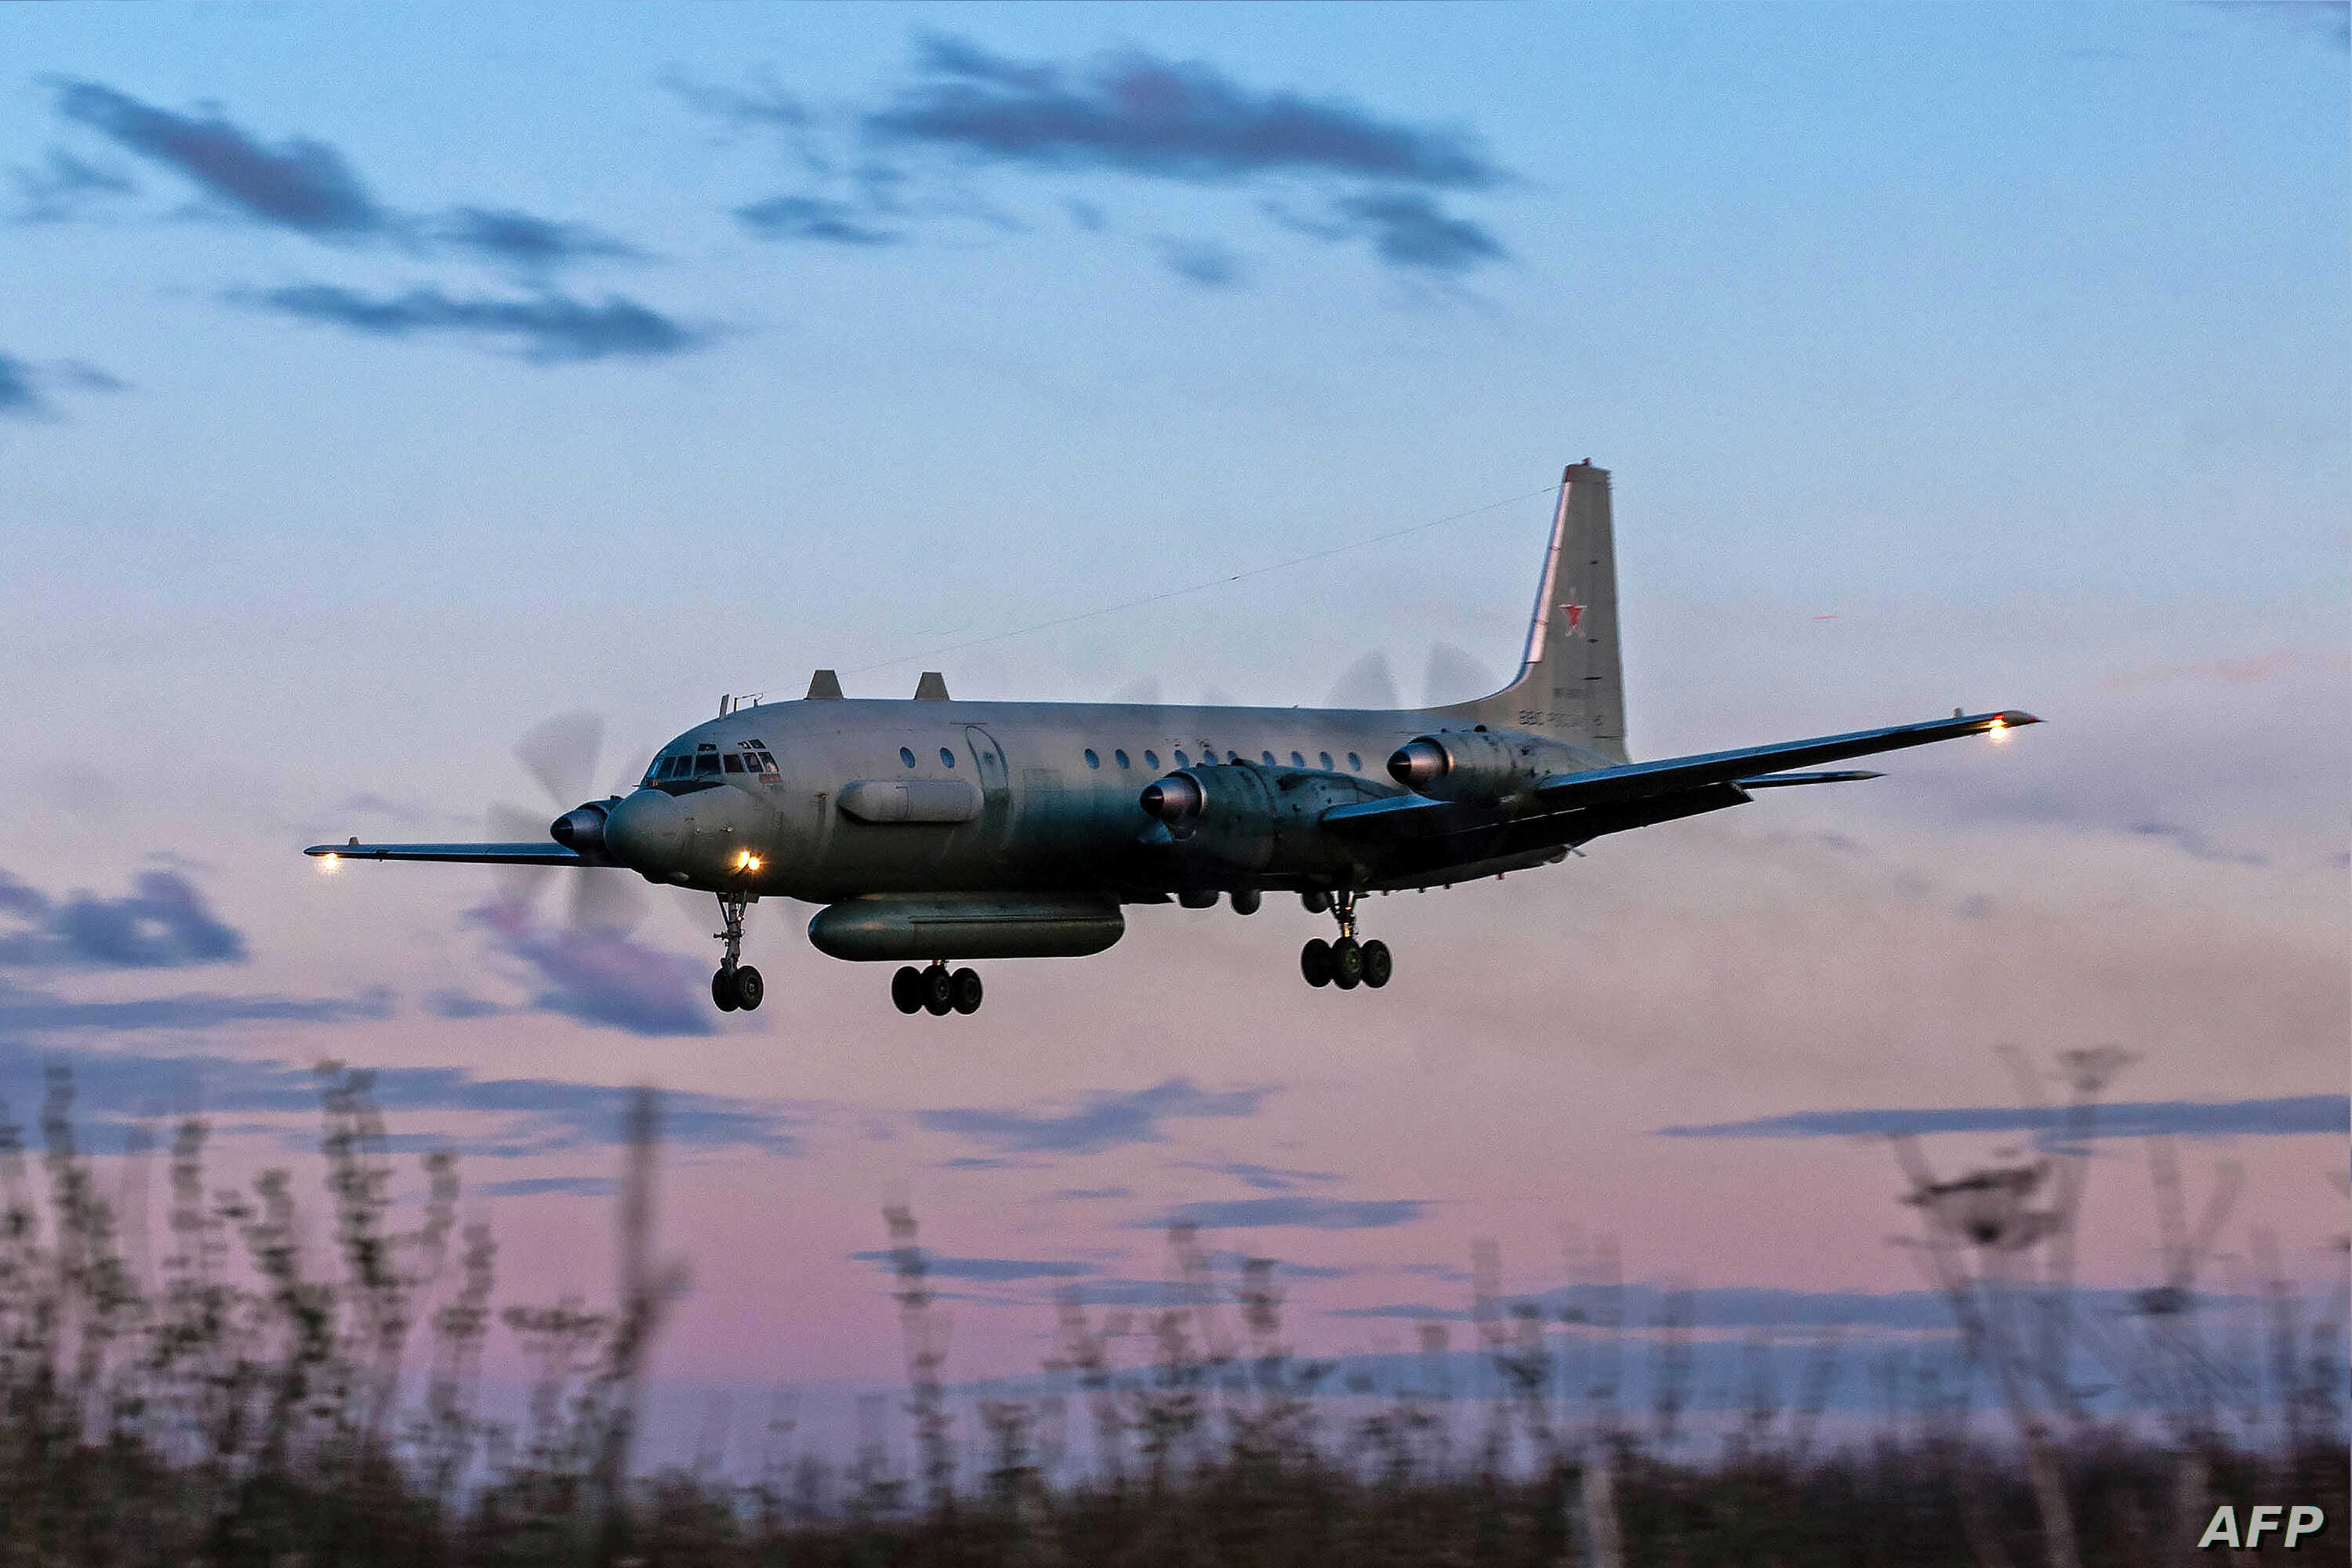 A photo taken on July 23, 2006 shows an Russian IL-20M (Ilyushin 20m) plane landing at an unknown location. Russia blamed Israel on Sept. 18, 2018 for the loss of a military IL-20M jet to Syrian fire, which killed all 15 servicemen on board, and thre...